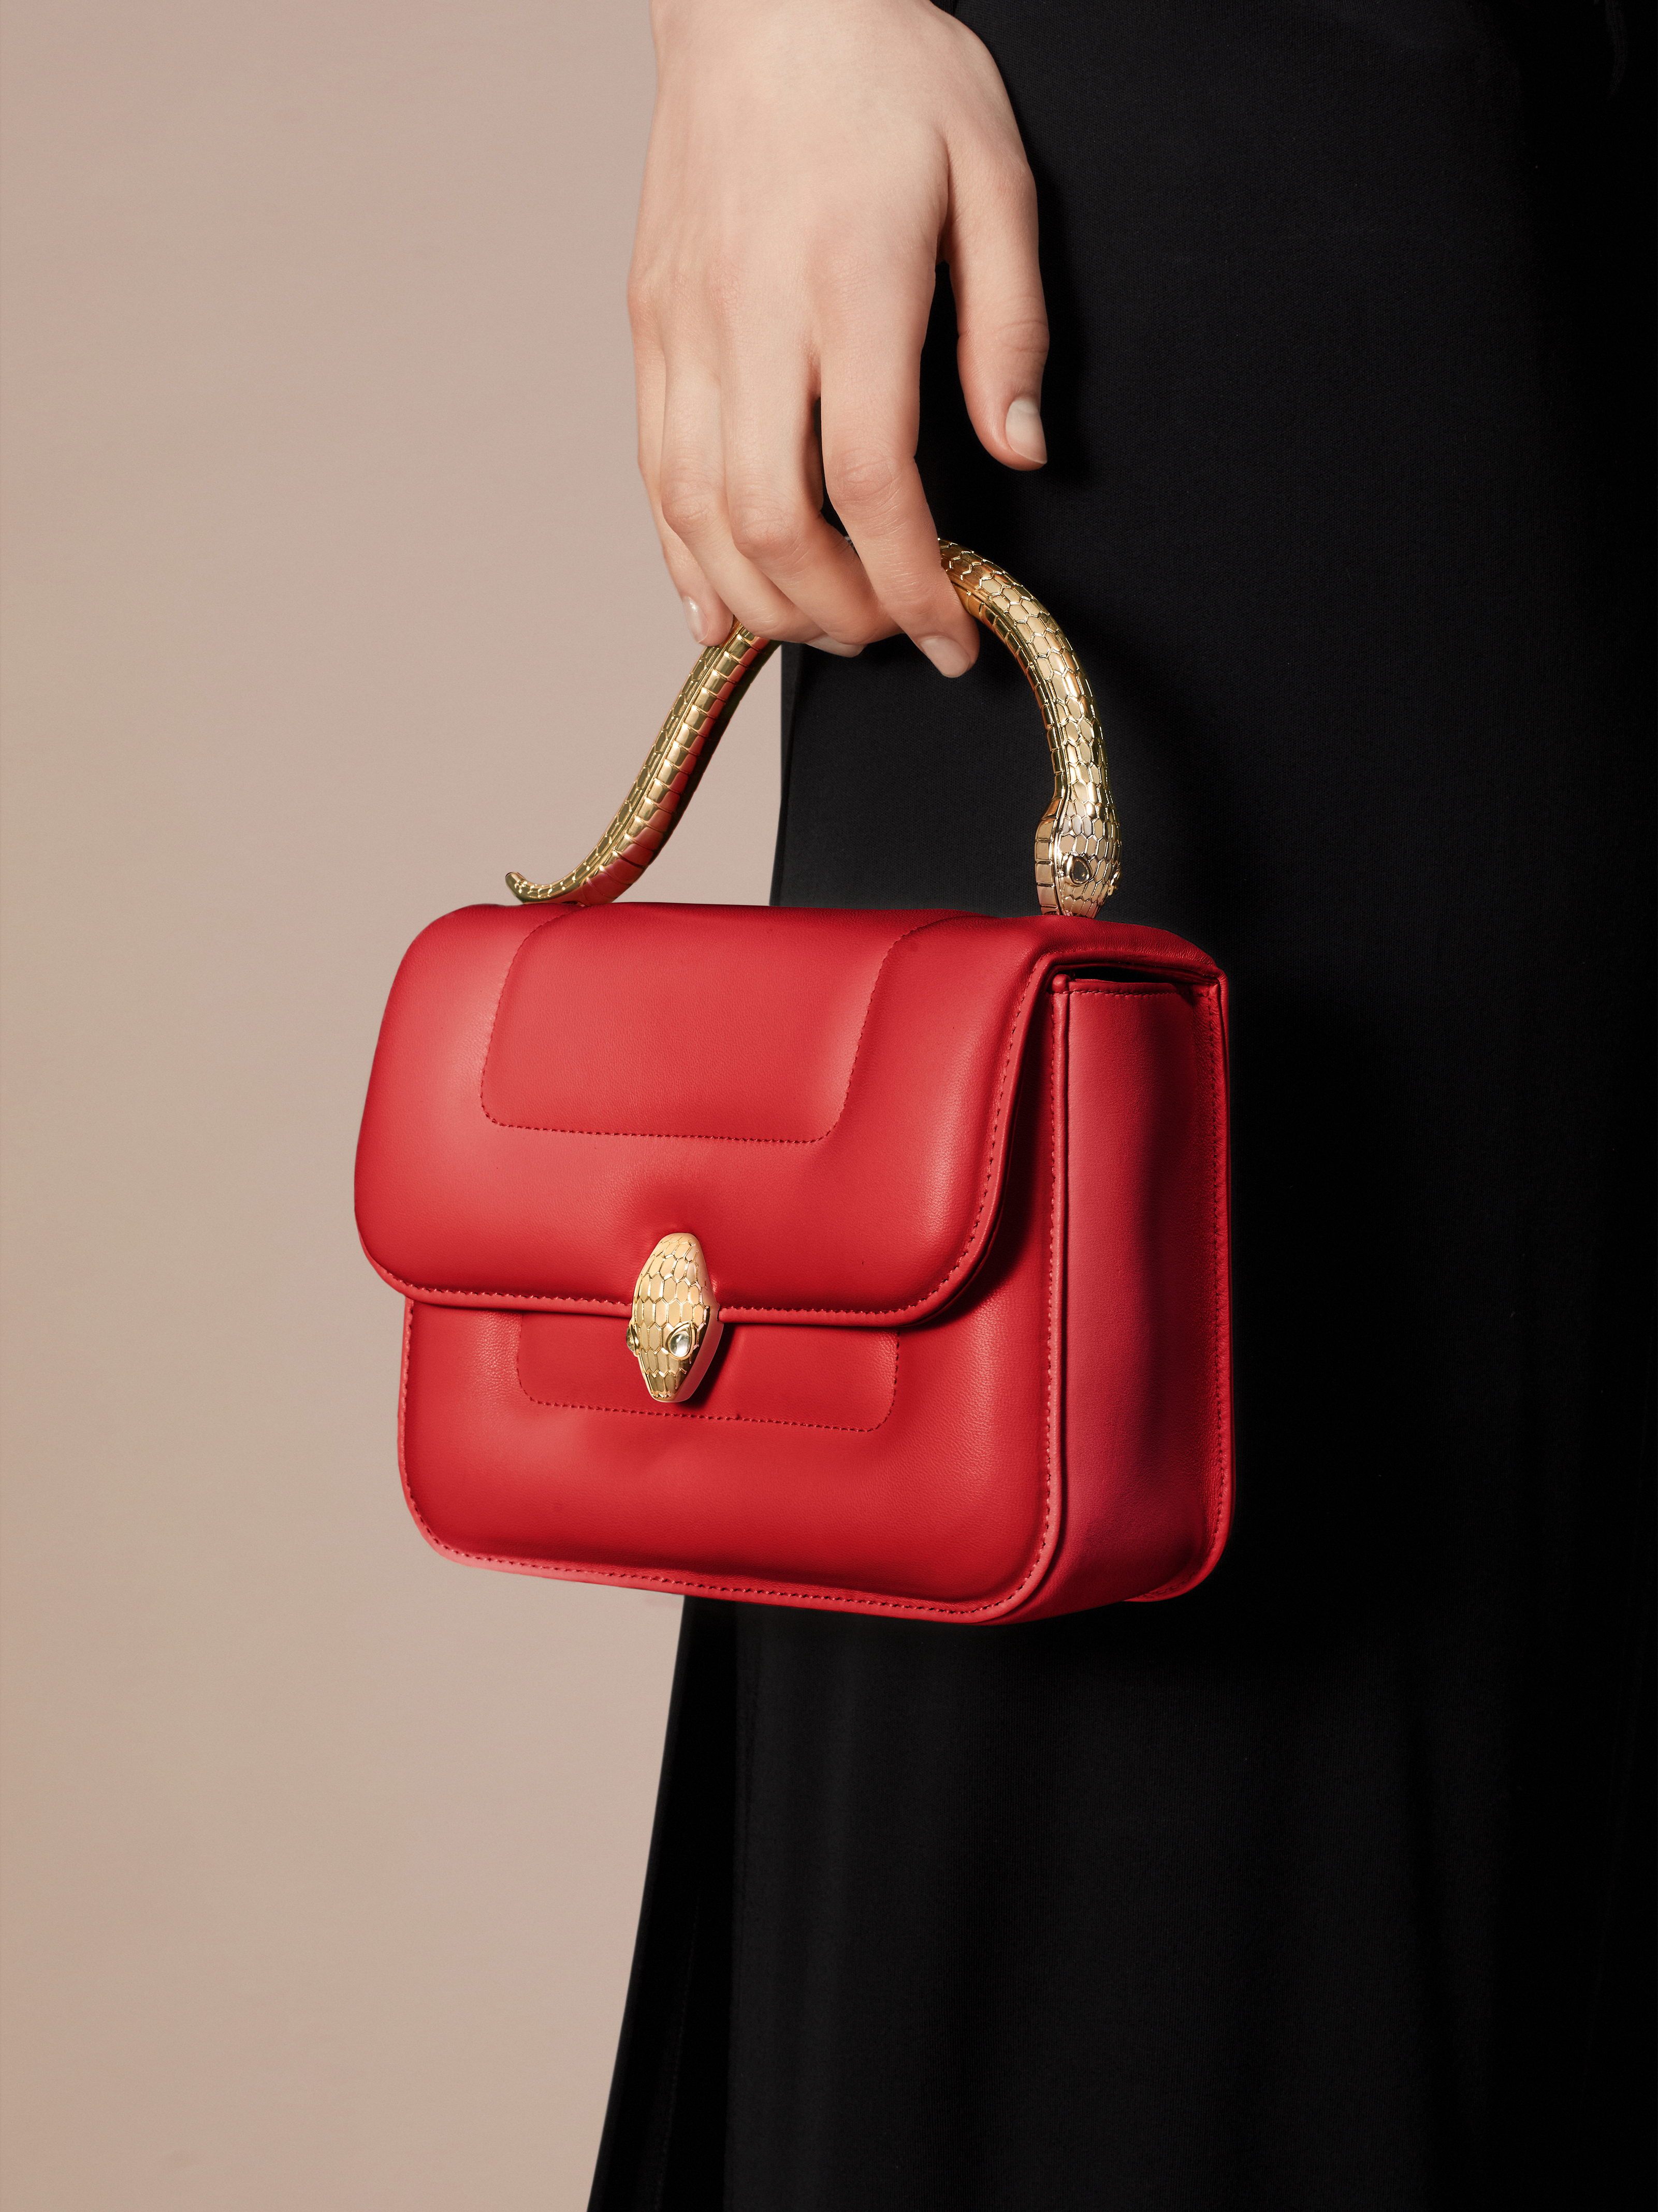 """""""Mary Katrantzou x Bvlgari"""" top handle bag in soft matelassé Carmine Jasper red nappa leather, with Carmine Jasper red nappa leather inner lining. New Serpenti head closure in gold-plated brass, finished with seductive crystal eyes. Special Edition. 291248 image 6"""